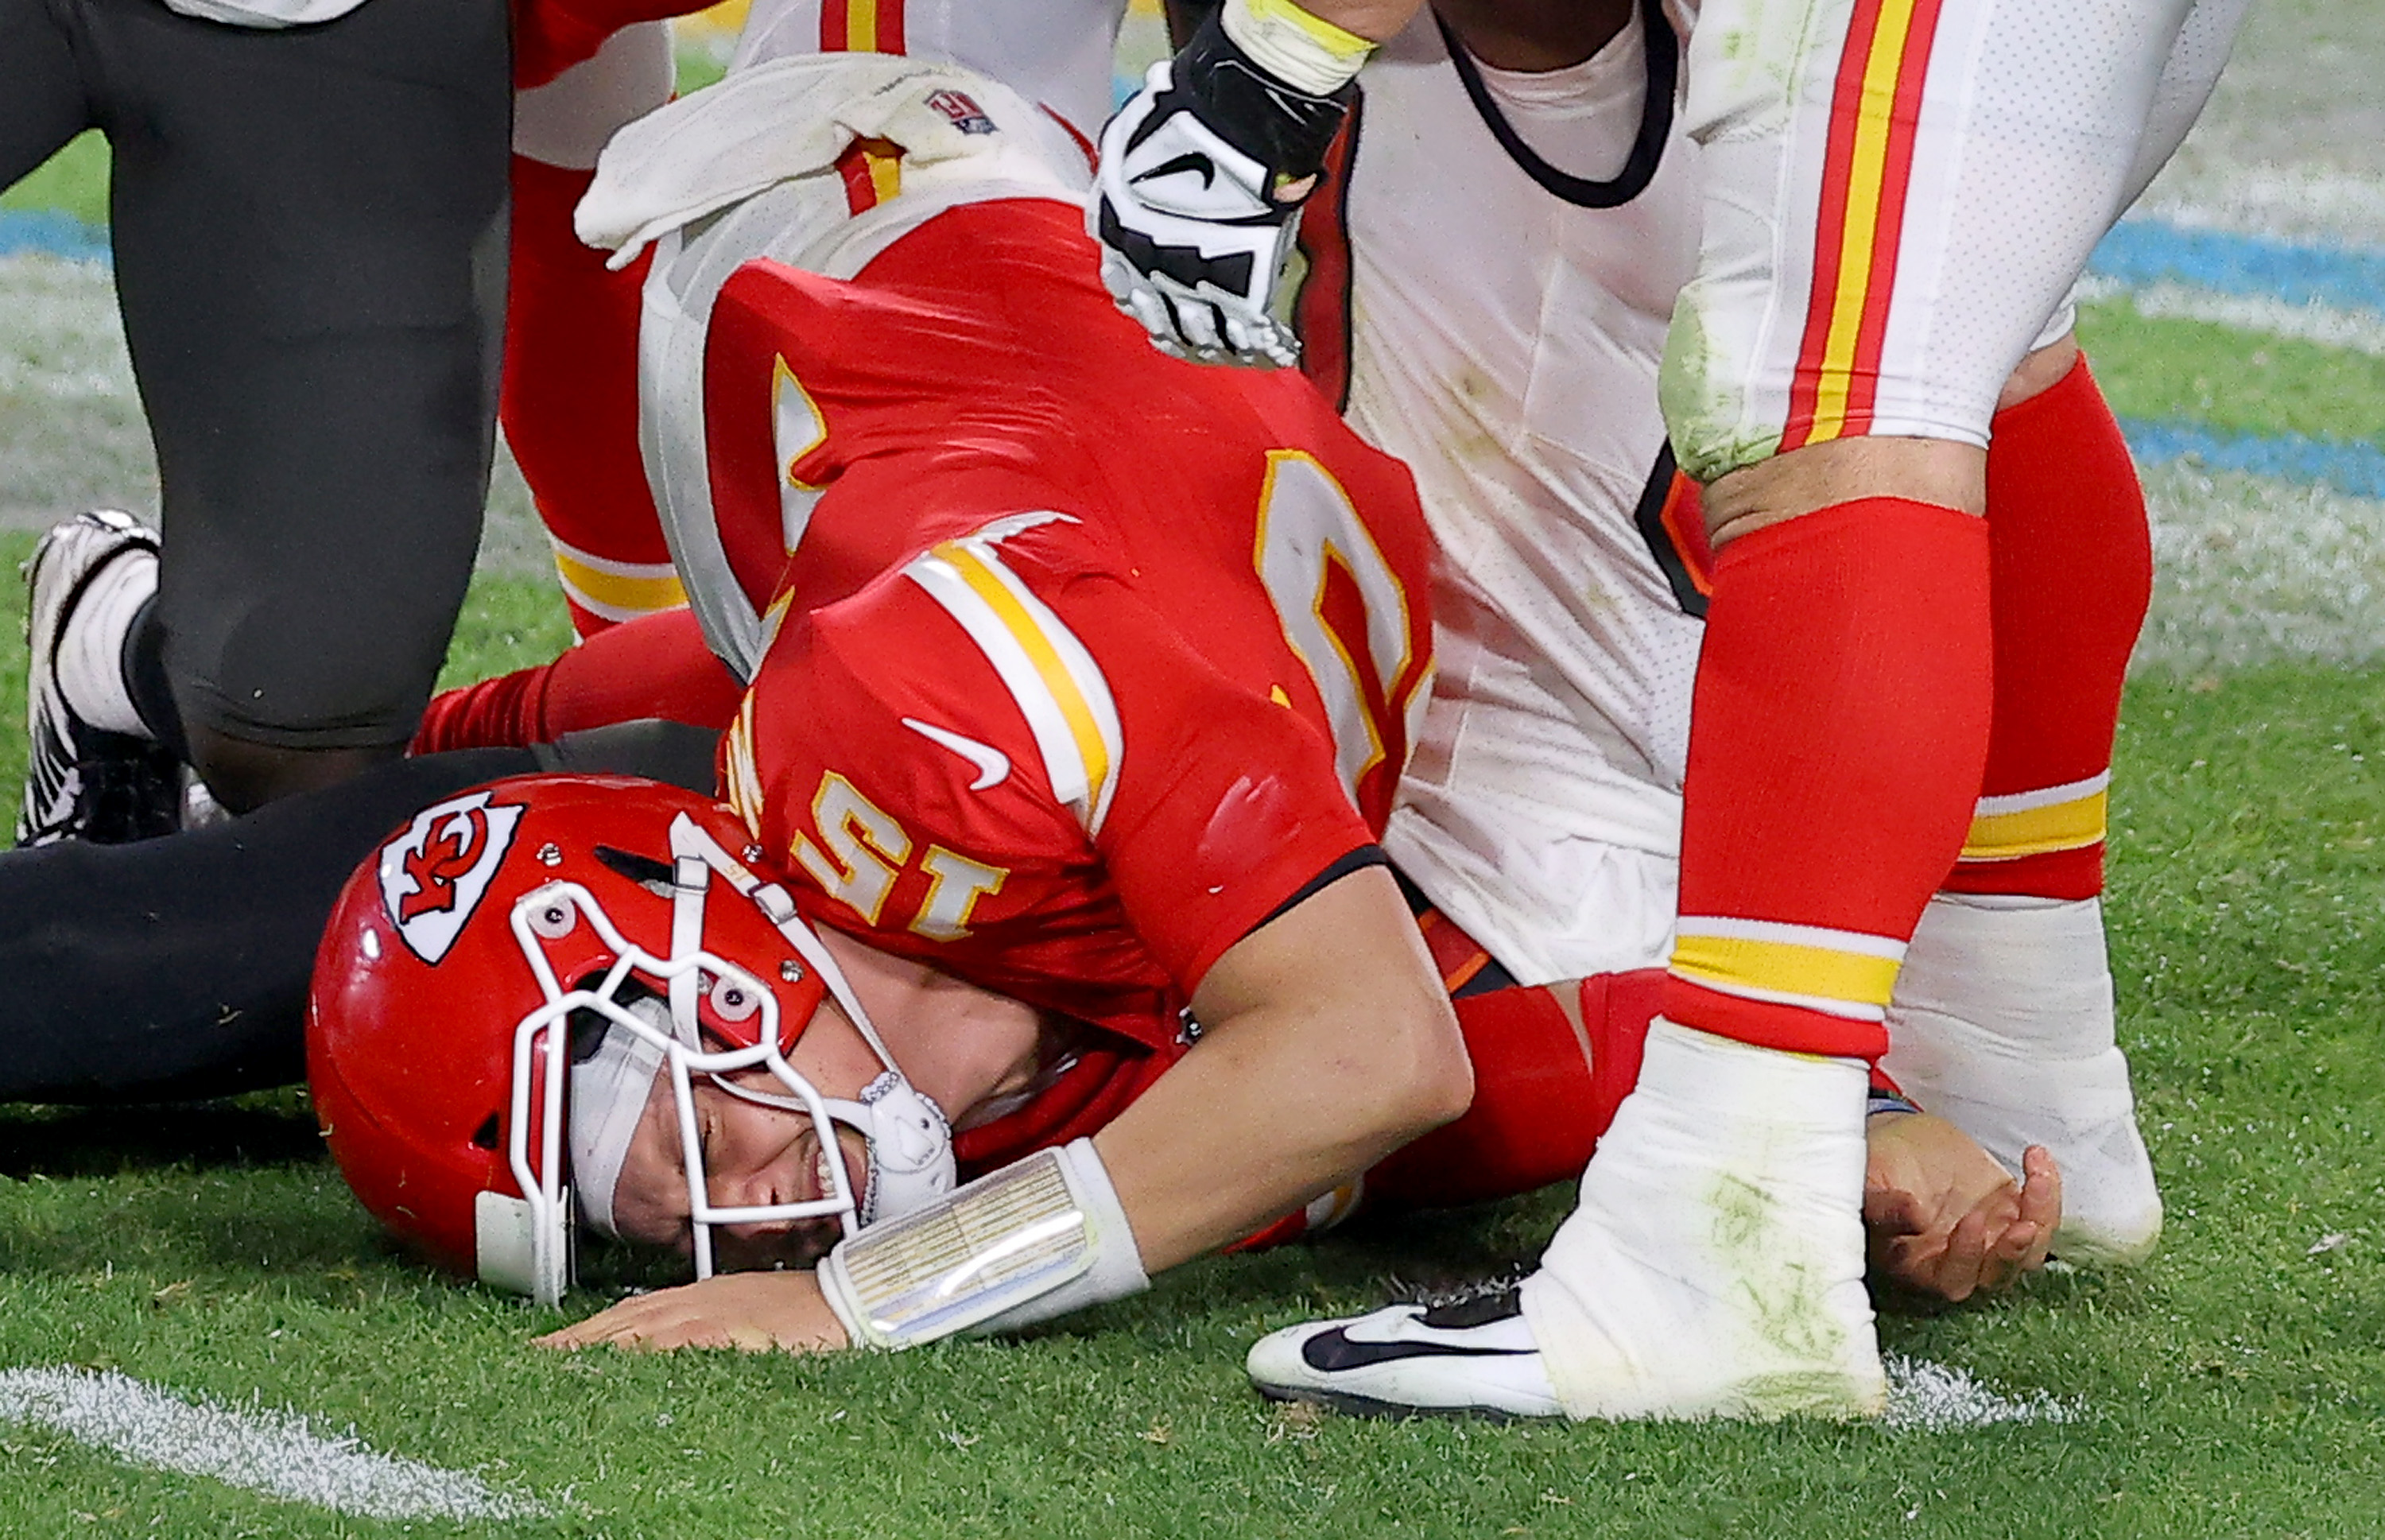 Quarterback Patrick Mahomes of the Kansas City Chiefs lies on the field after being hit